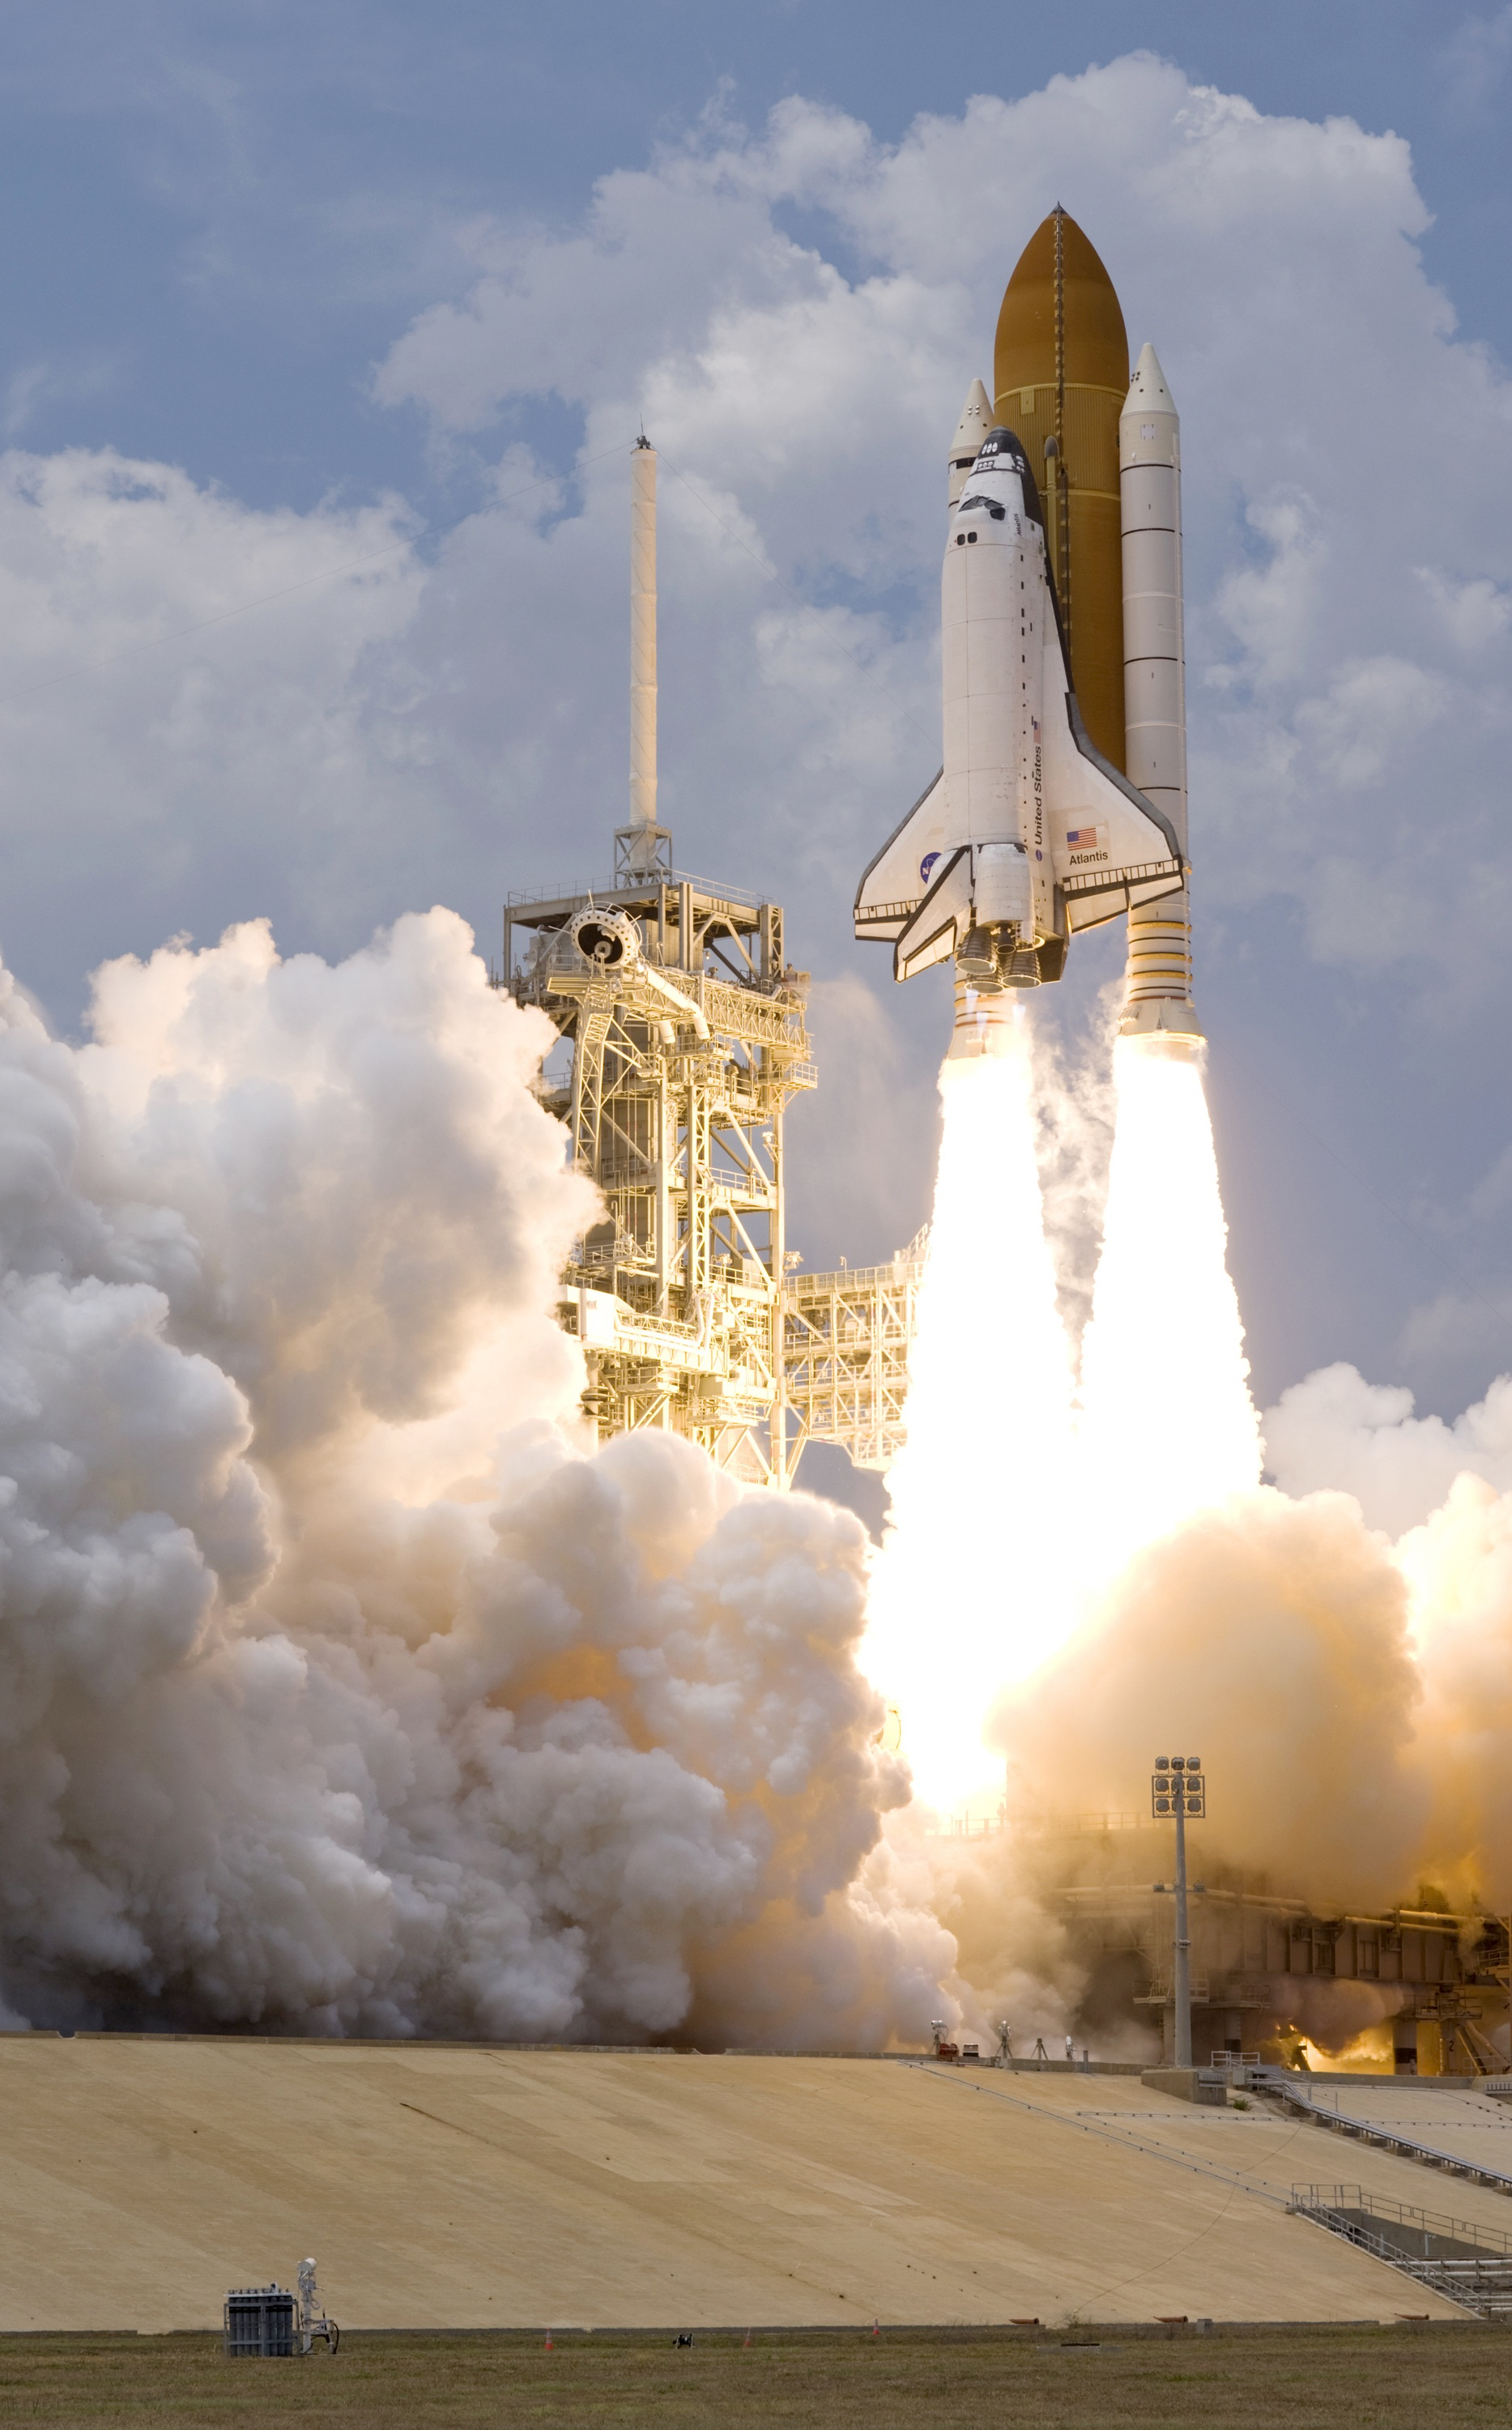 space-shuttle-liftoff-atlantis-rocket-39603.jpeg